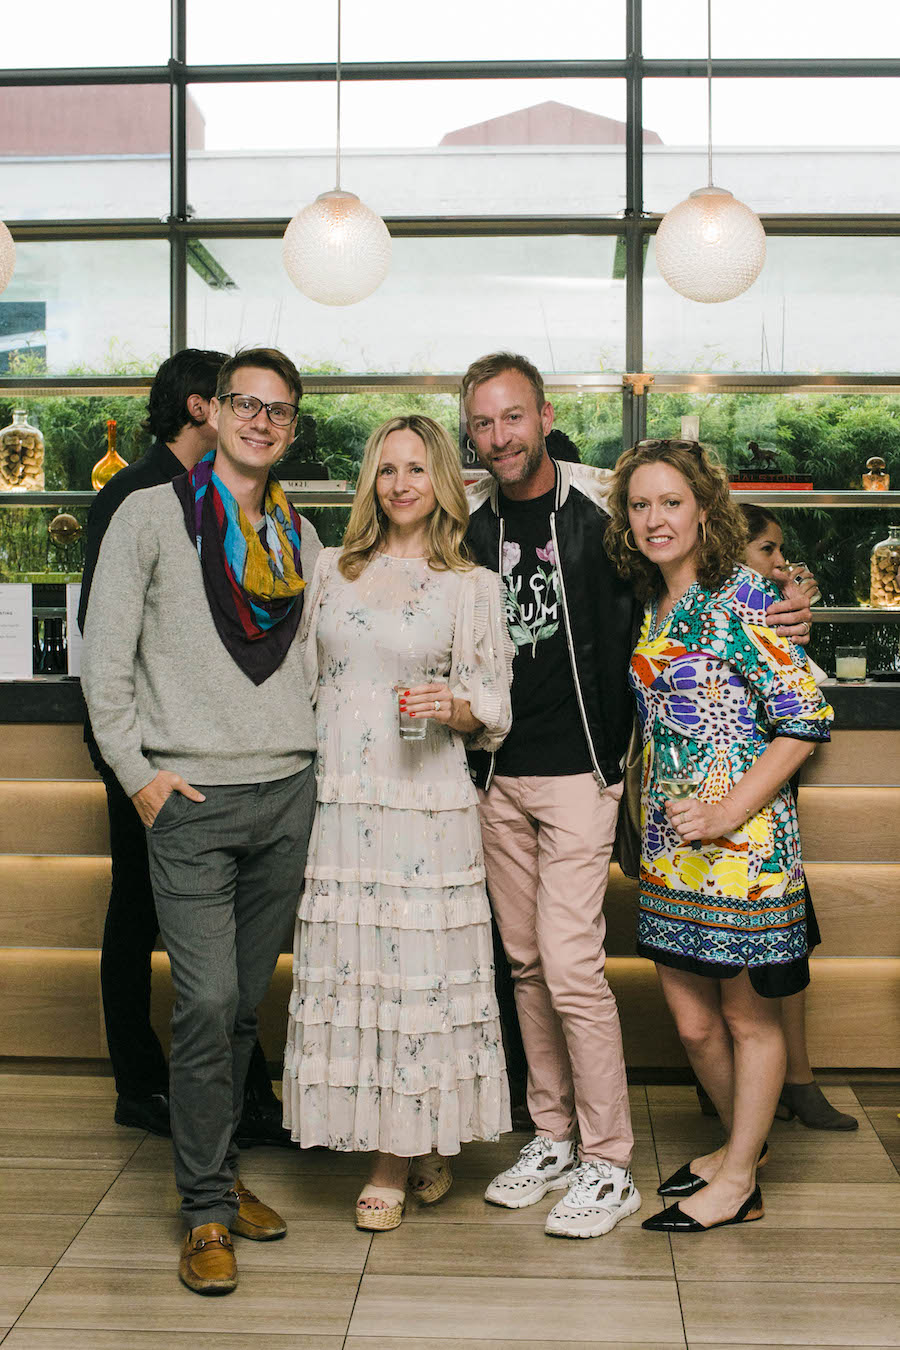 Former San Francisco Ballet dancer, Luke Willis, The Supper Club's founder Tamsin Lonsdale, Jay Jeffers' creative director Michael Purdy, and friend